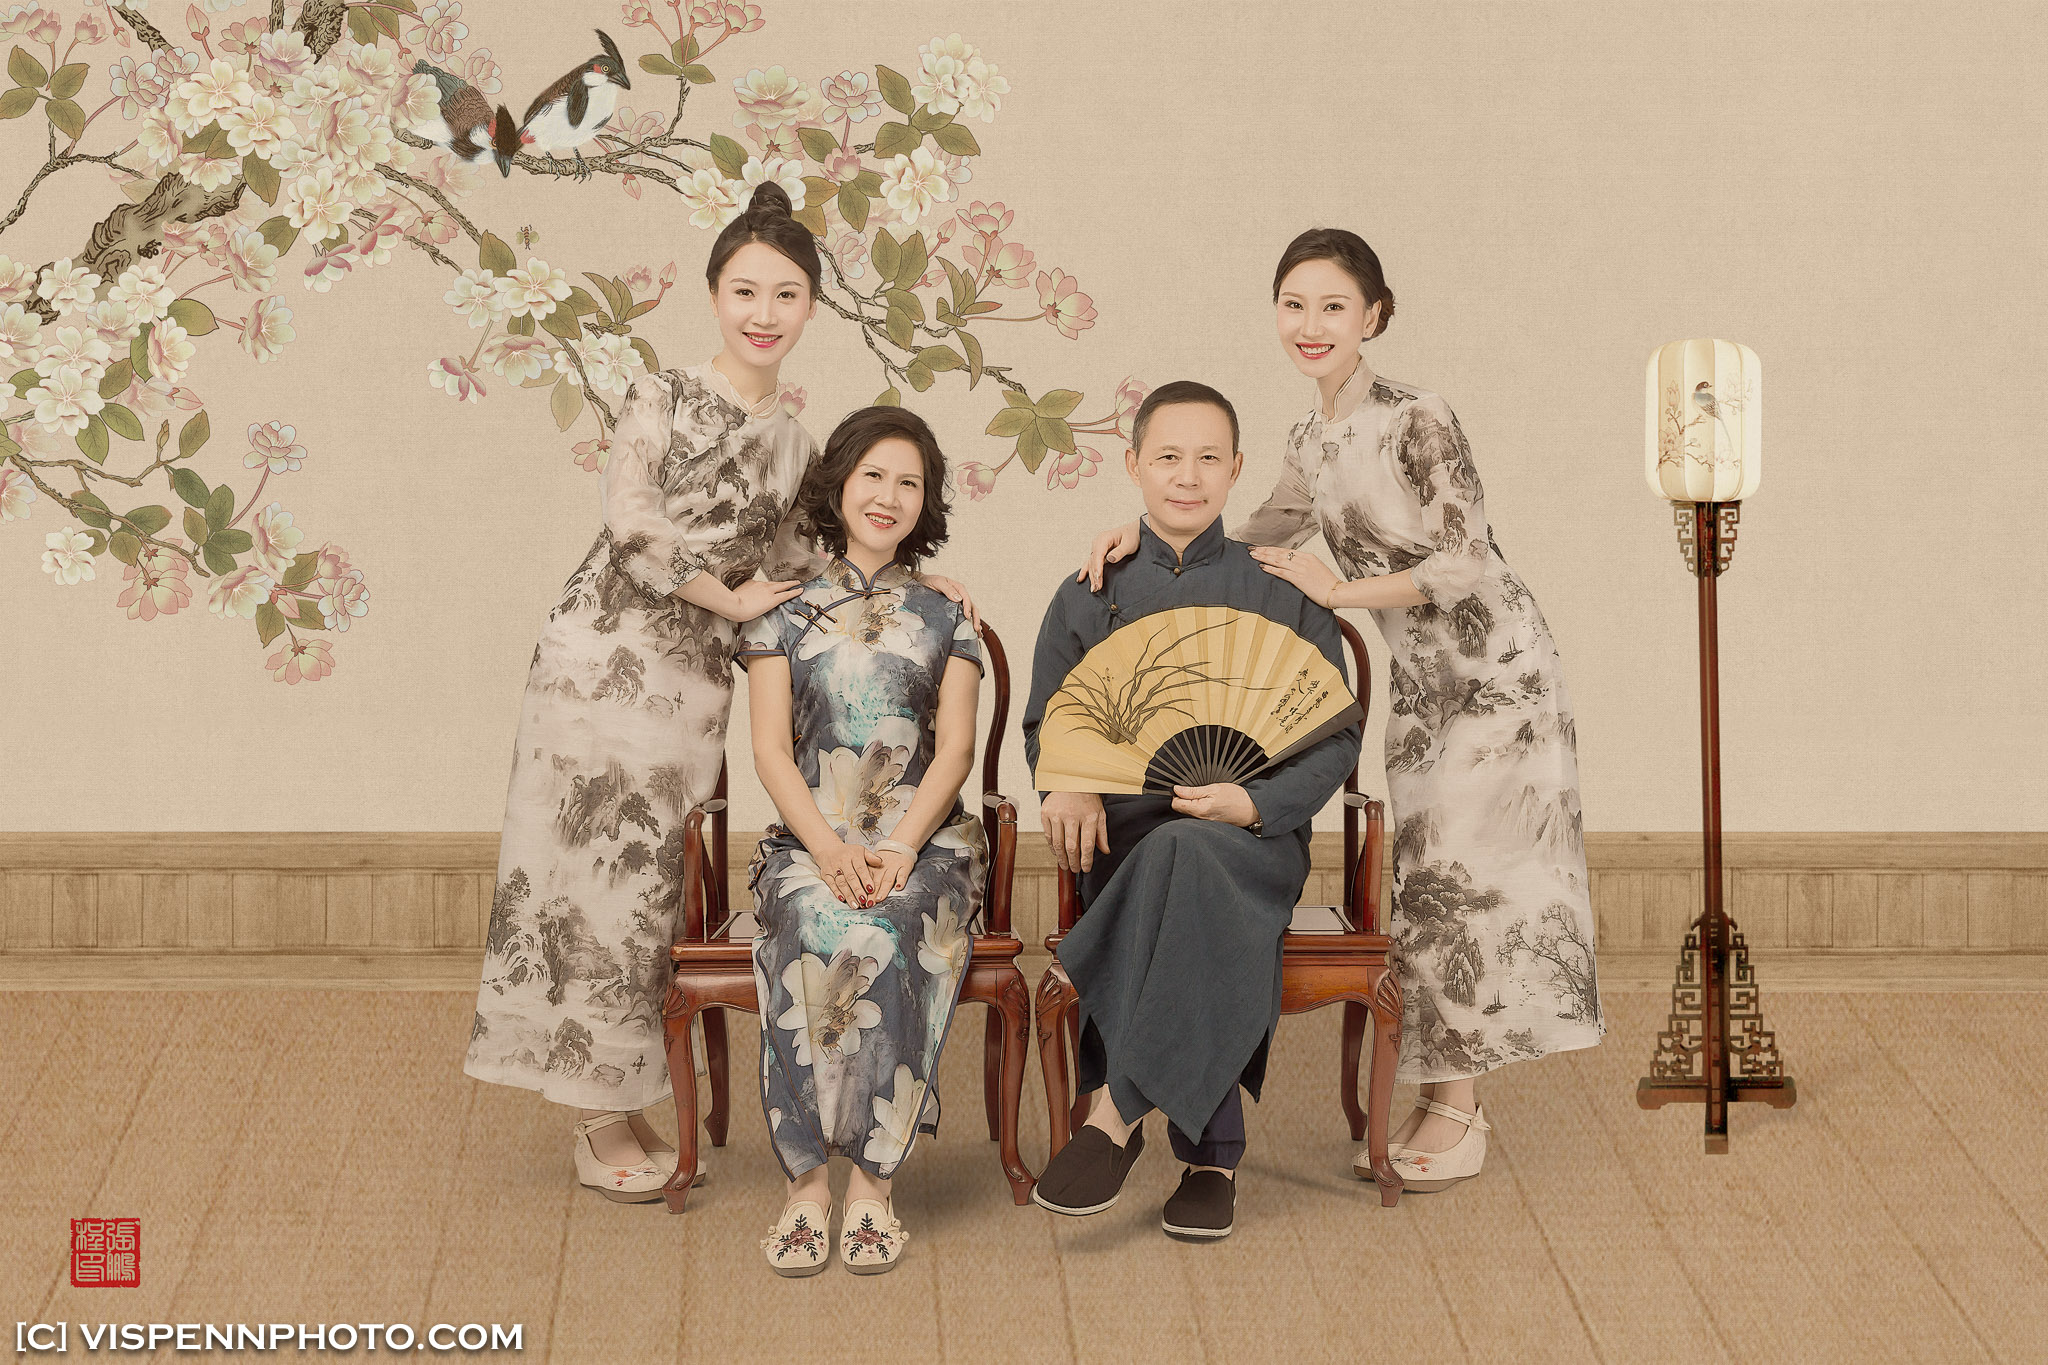 Melbourne Newborn Baby Family Photo BaoBao VISPENN 墨尔本 儿童 宝宝 百天照 满月照 孕妇照 全家福 KIDS VISPENN IreneZeng 1136